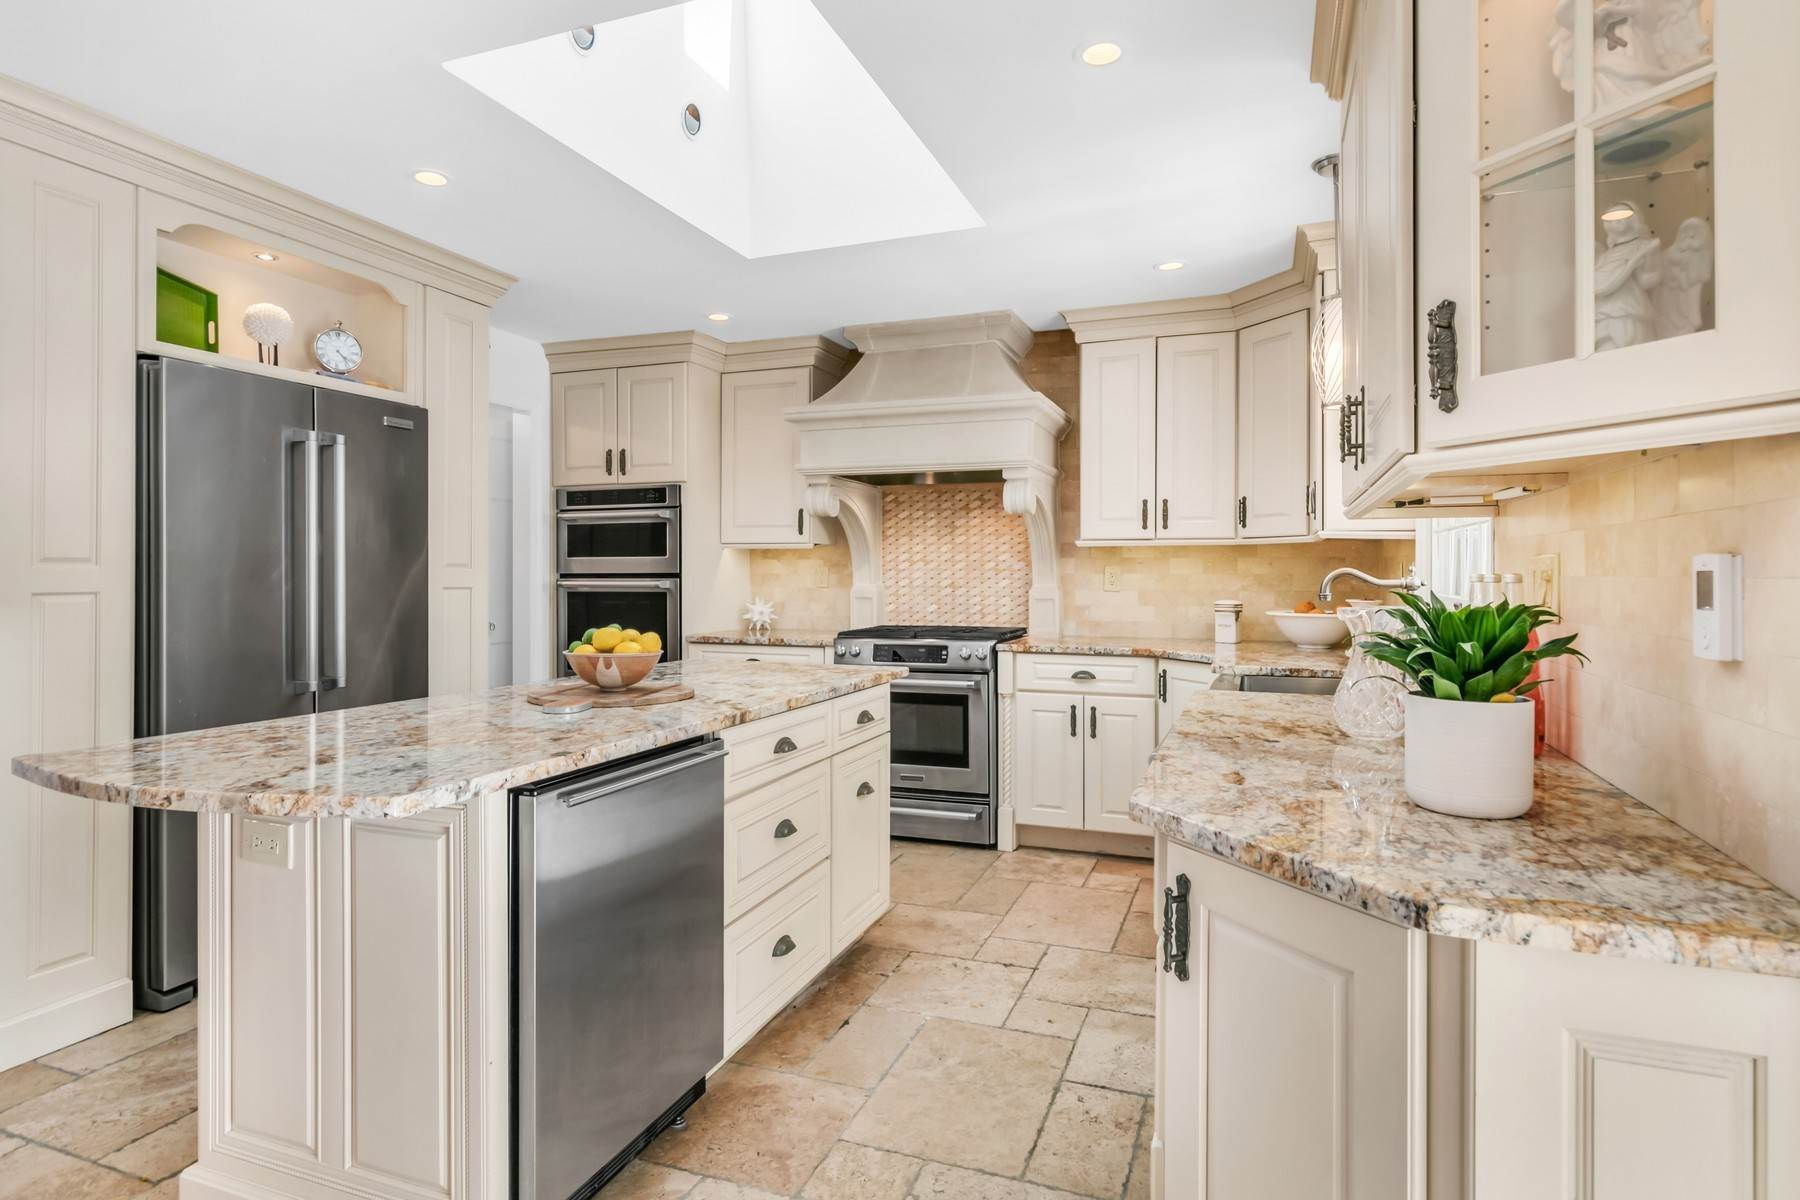 13. Single Family Homes for Sale at Elegance Meets Edgy Infused with Exceptional Quality and Custom Updates 130 Lippincott Road Little Silver, New Jersey 07739 United States